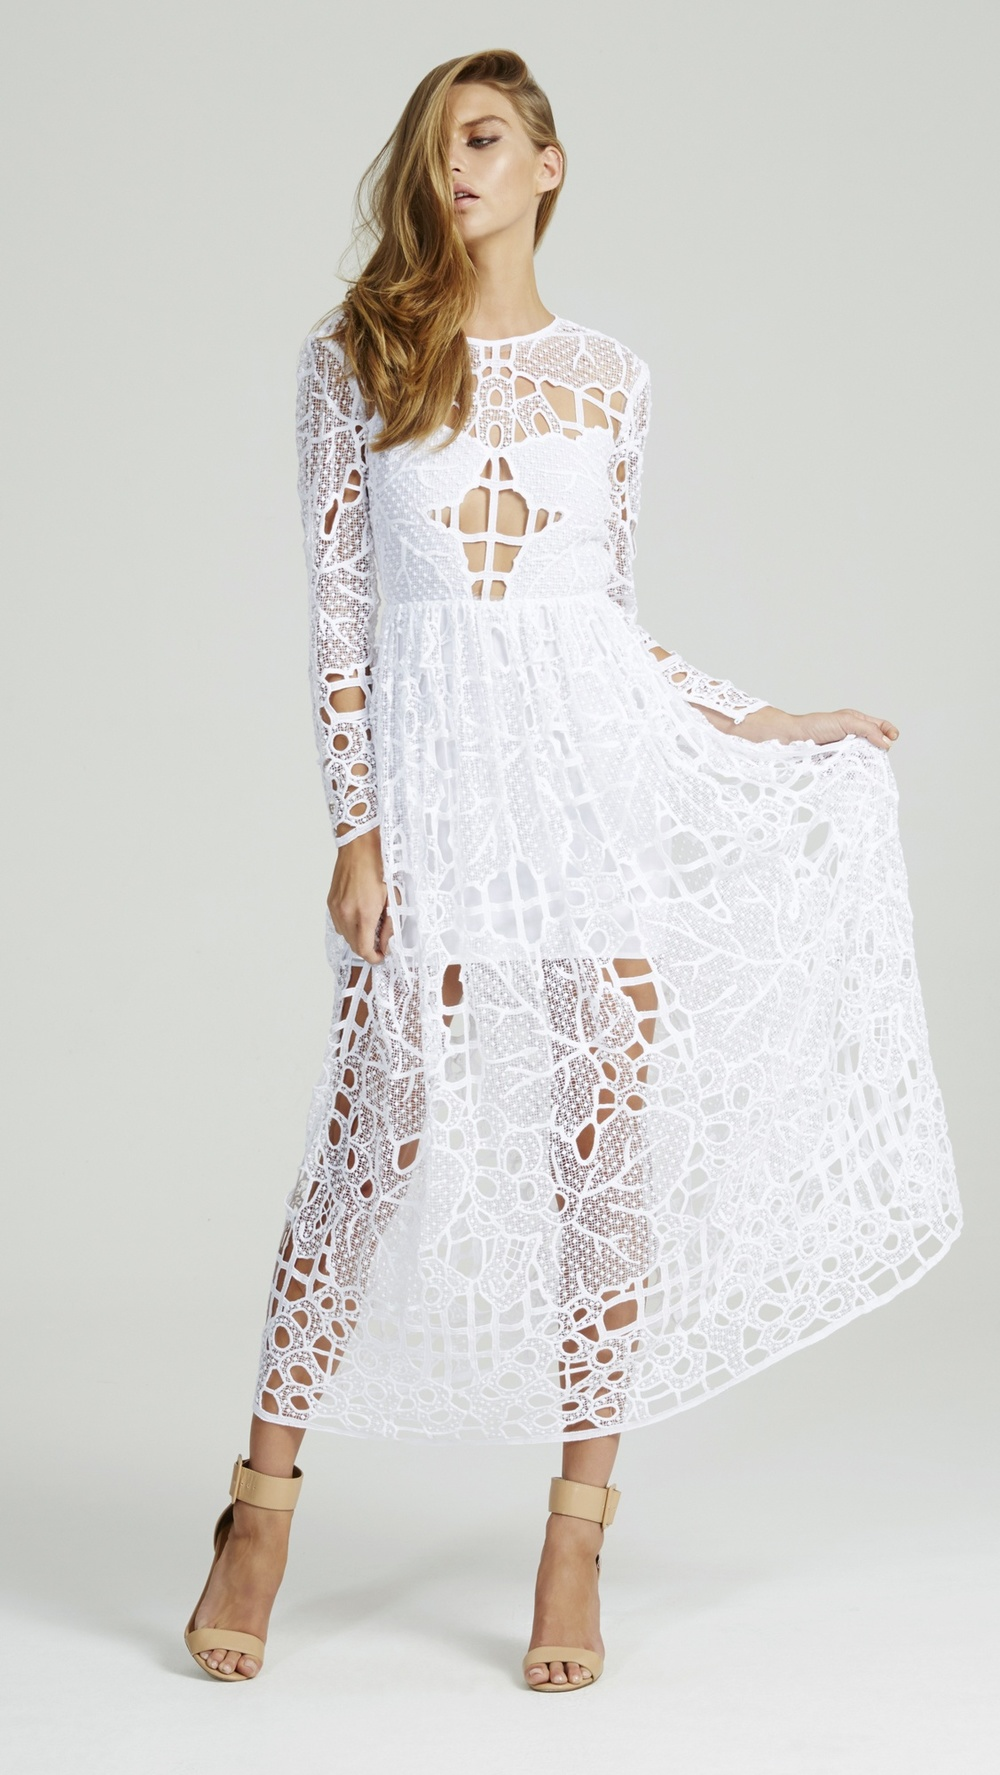 http://www.revolveclothing.com/alice-mccall-burning-love-dress-in-white-leaf/dp/AMCC-WD36/?d=F&currency=USD&source=google&mkwid=%7Bifsearch:s%7D%7Bifcontent:c%7D_dc%7Cpcrid%7C95166372731%7Cpkw%7C%7Cpmt%7C&pdv=c&matchtype=&gclid=CLnF3YLXrcsCFVKVfgodZUQDRw